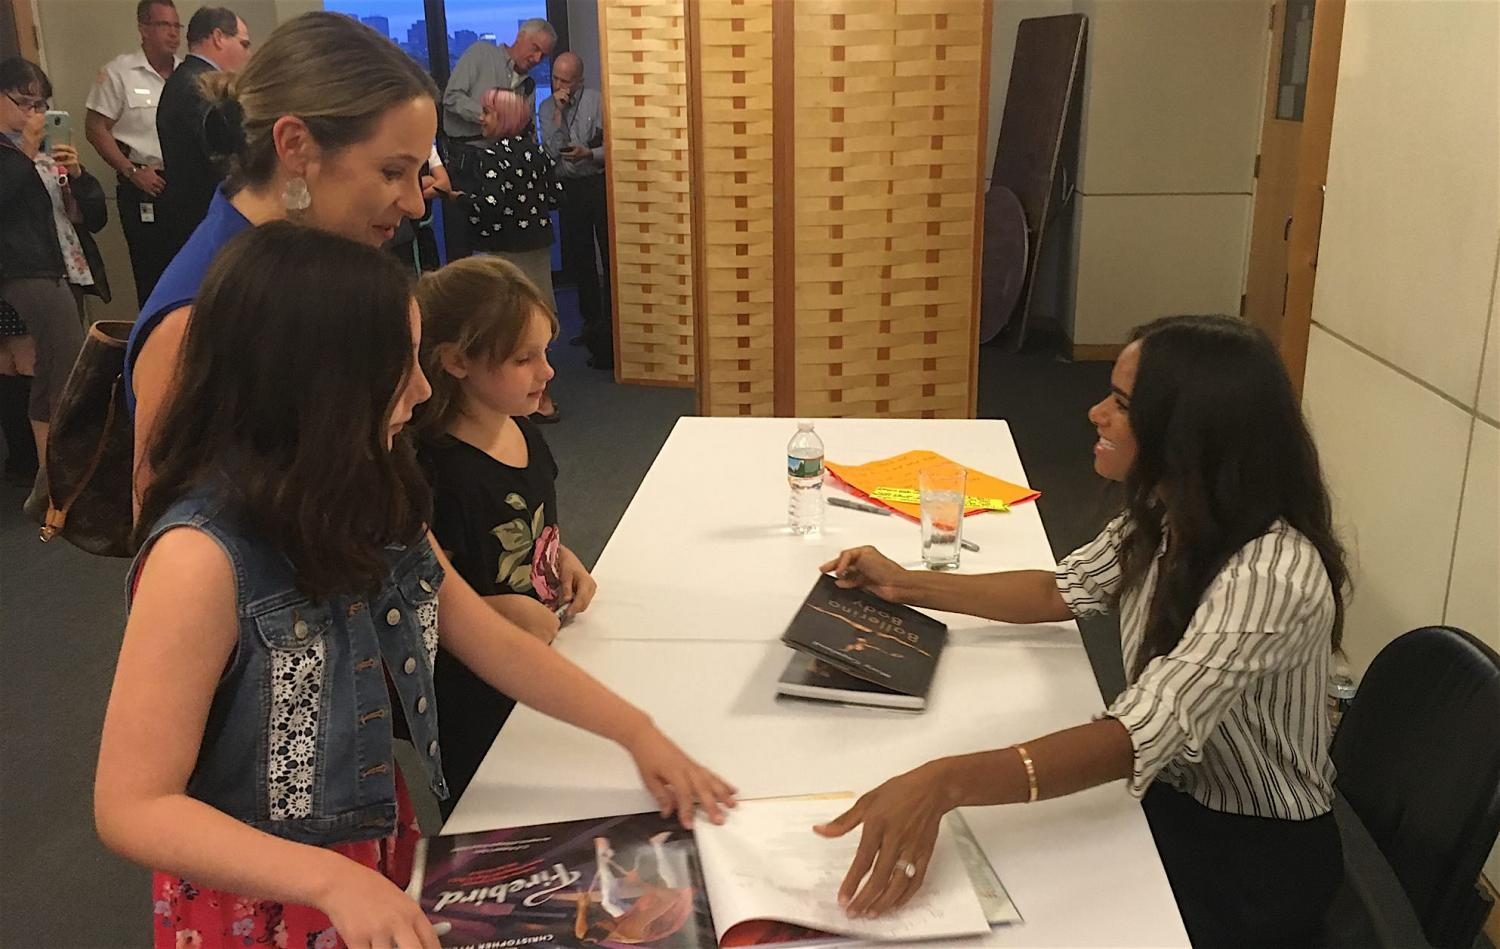 Misty Copeland (right) speaks with reporters from the Cunniff Kids News after her talk at the JFK Library on Aug. 28, 2017.